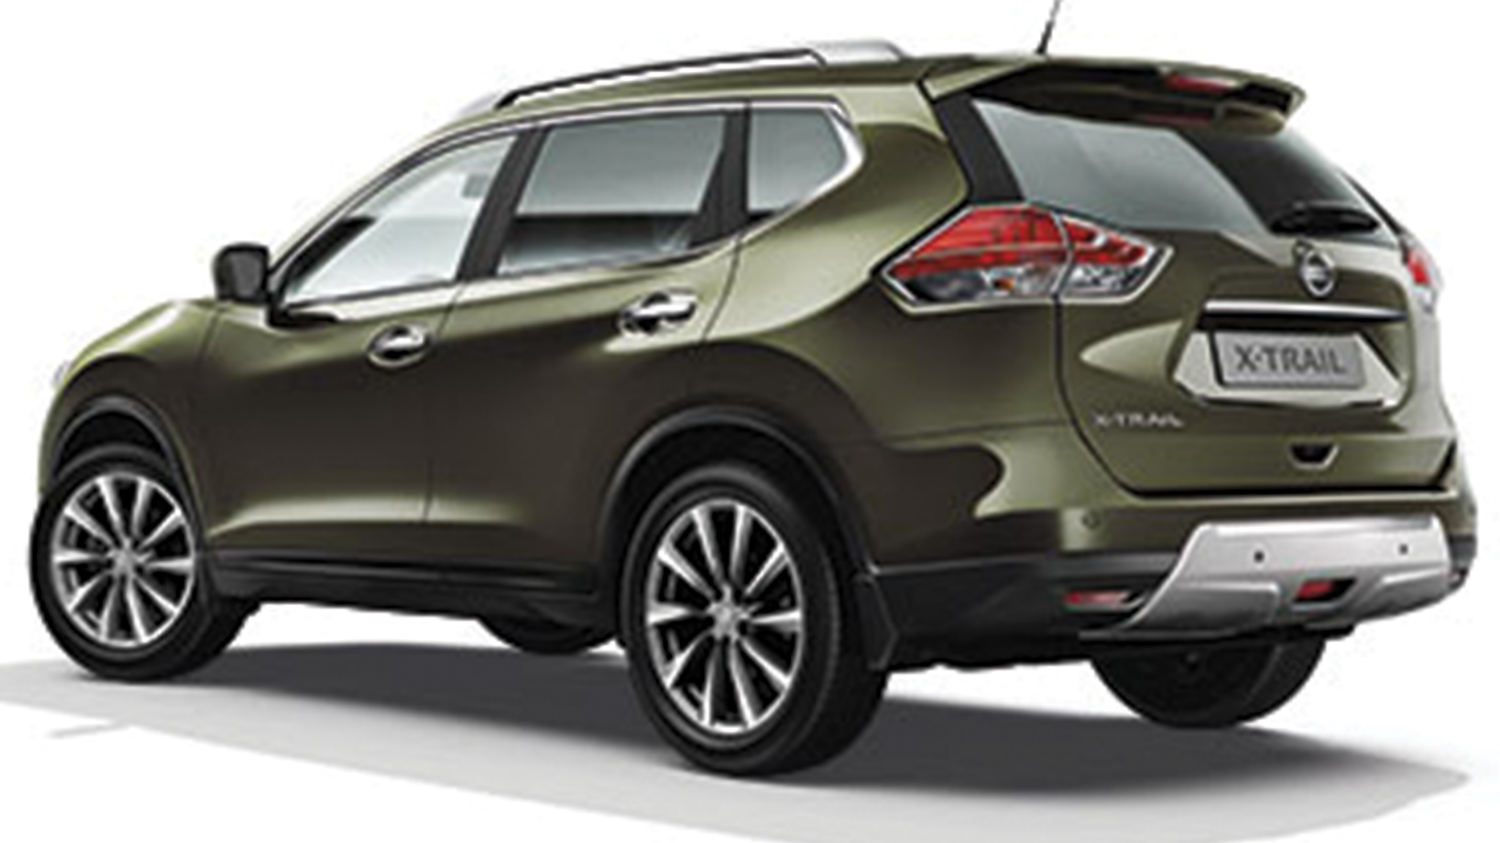 x trail accessories nissan singapore